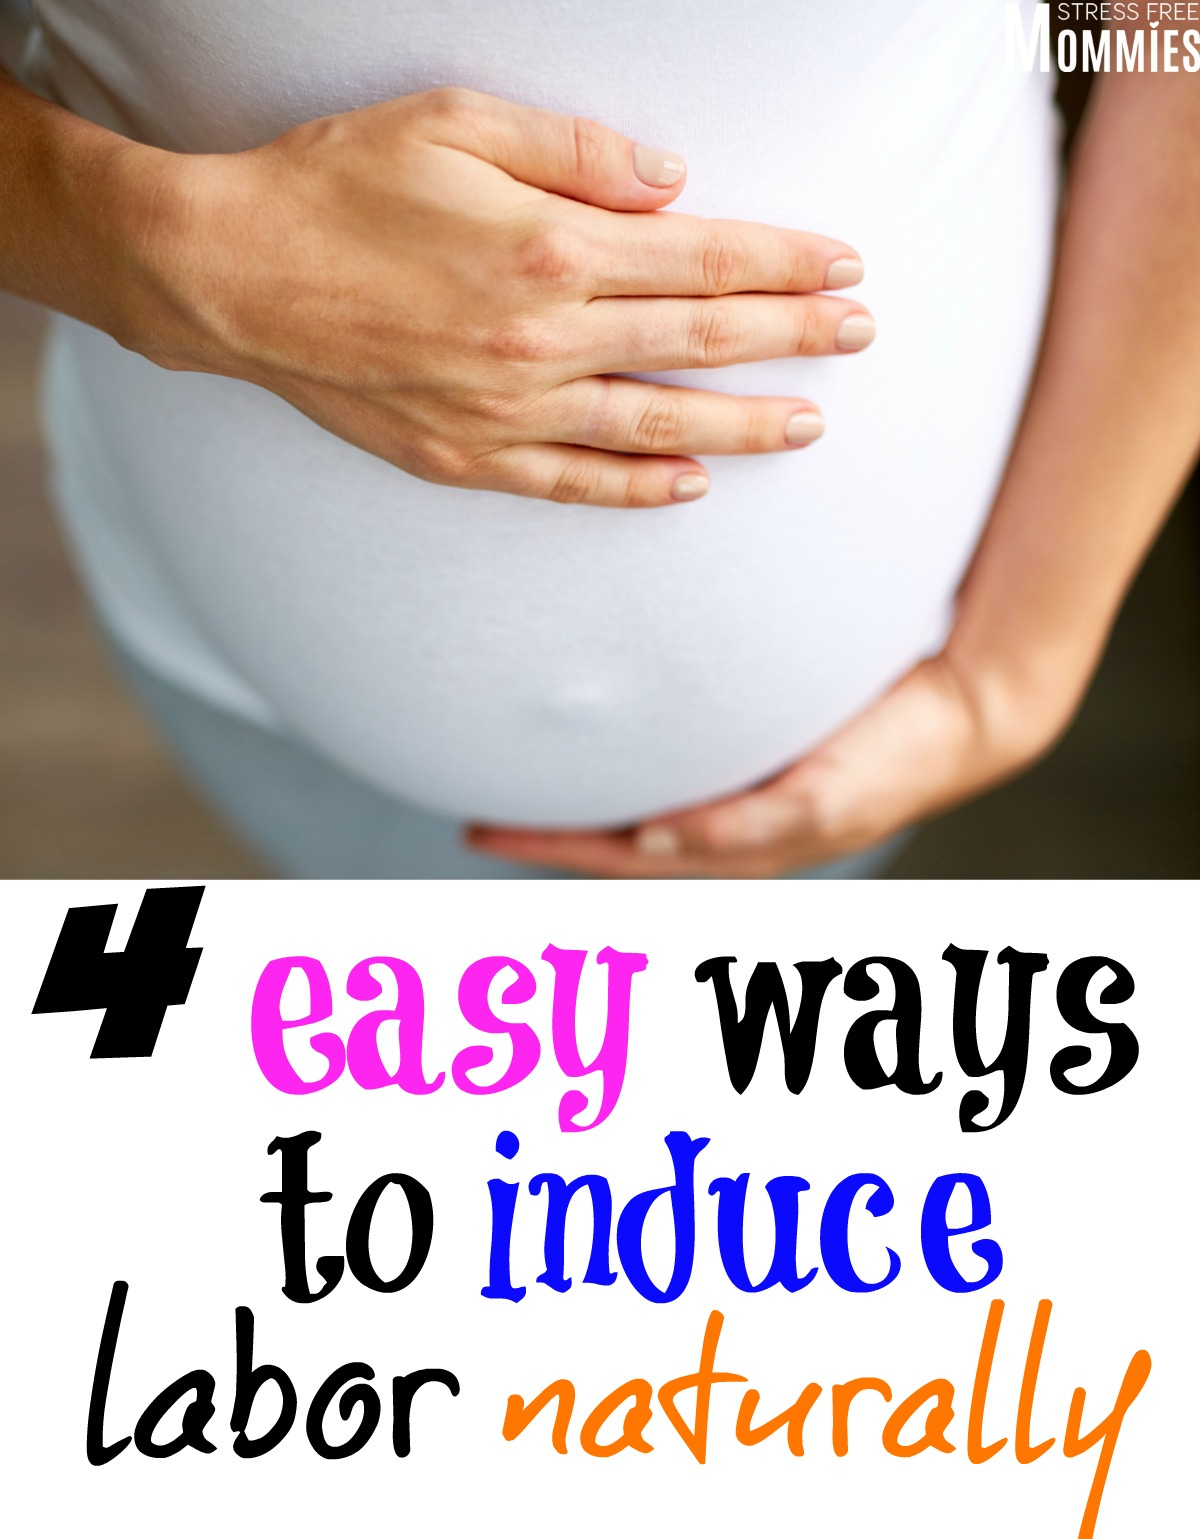 A fun and helpful article that will show you the different was to induce labor naturally. For pregnant women who are over being pregnant, are overdue and just want to speed up labor! #induce #pregnancy